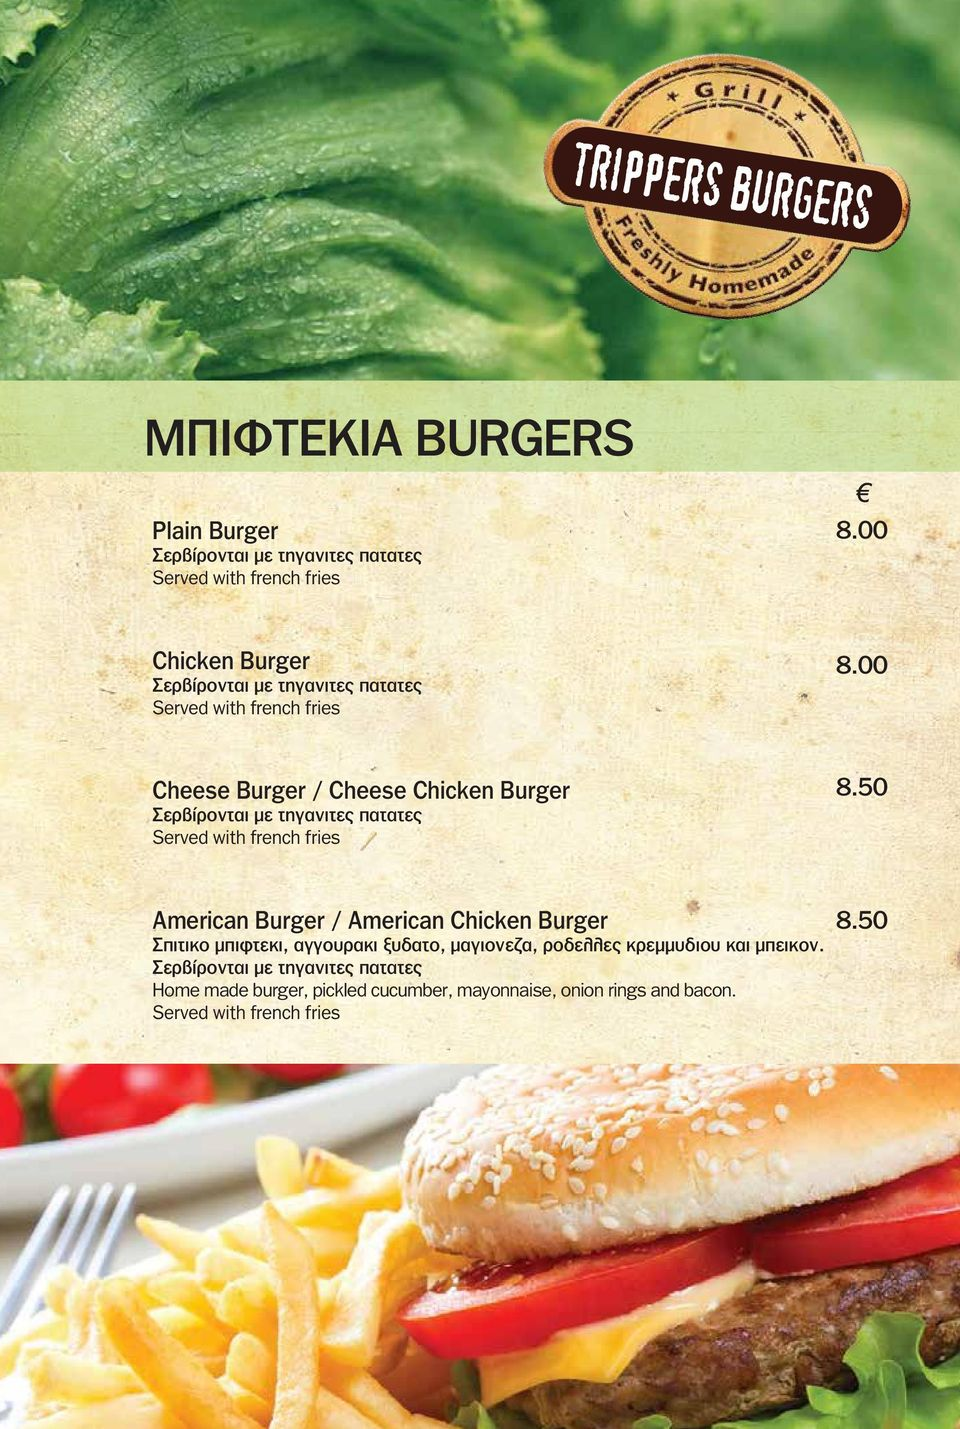 00 Cheese Burger / Cheese Chicken Burger Σερβίρονται µε τηγανιτες πατατες Served with french fries 8.